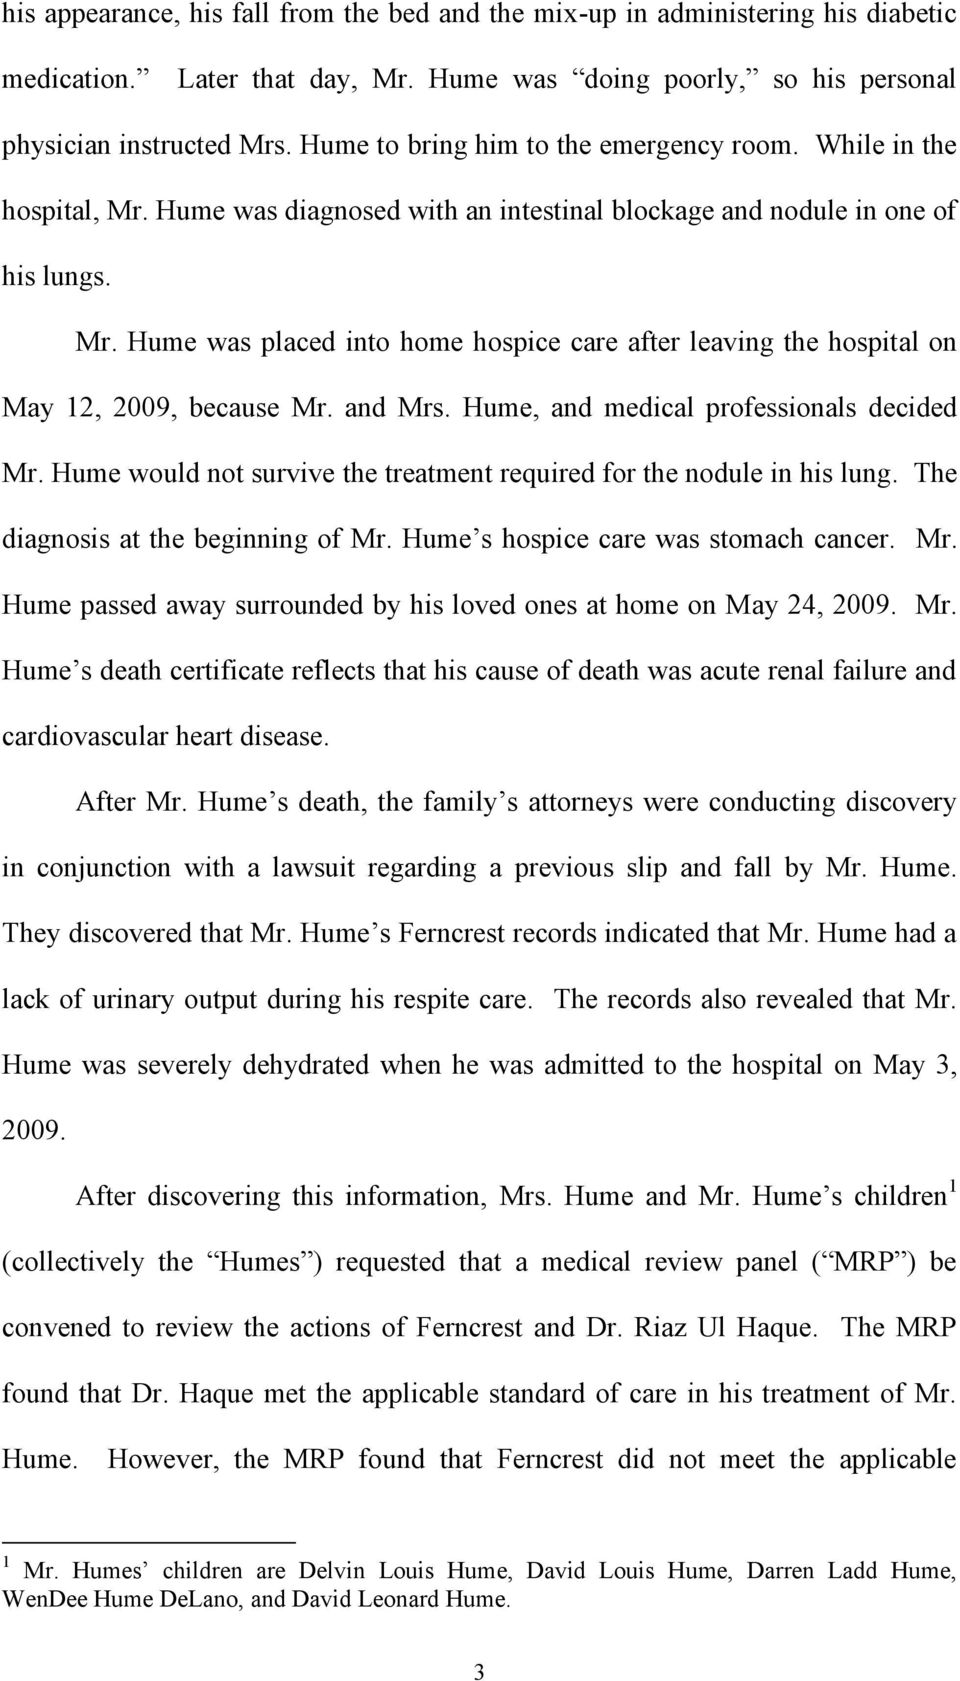 and Mrs. Hume, and medical professionals decided Mr. Hume would not survive the treatment required for the nodule in his lung. The diagnosis at the beginning of Mr.